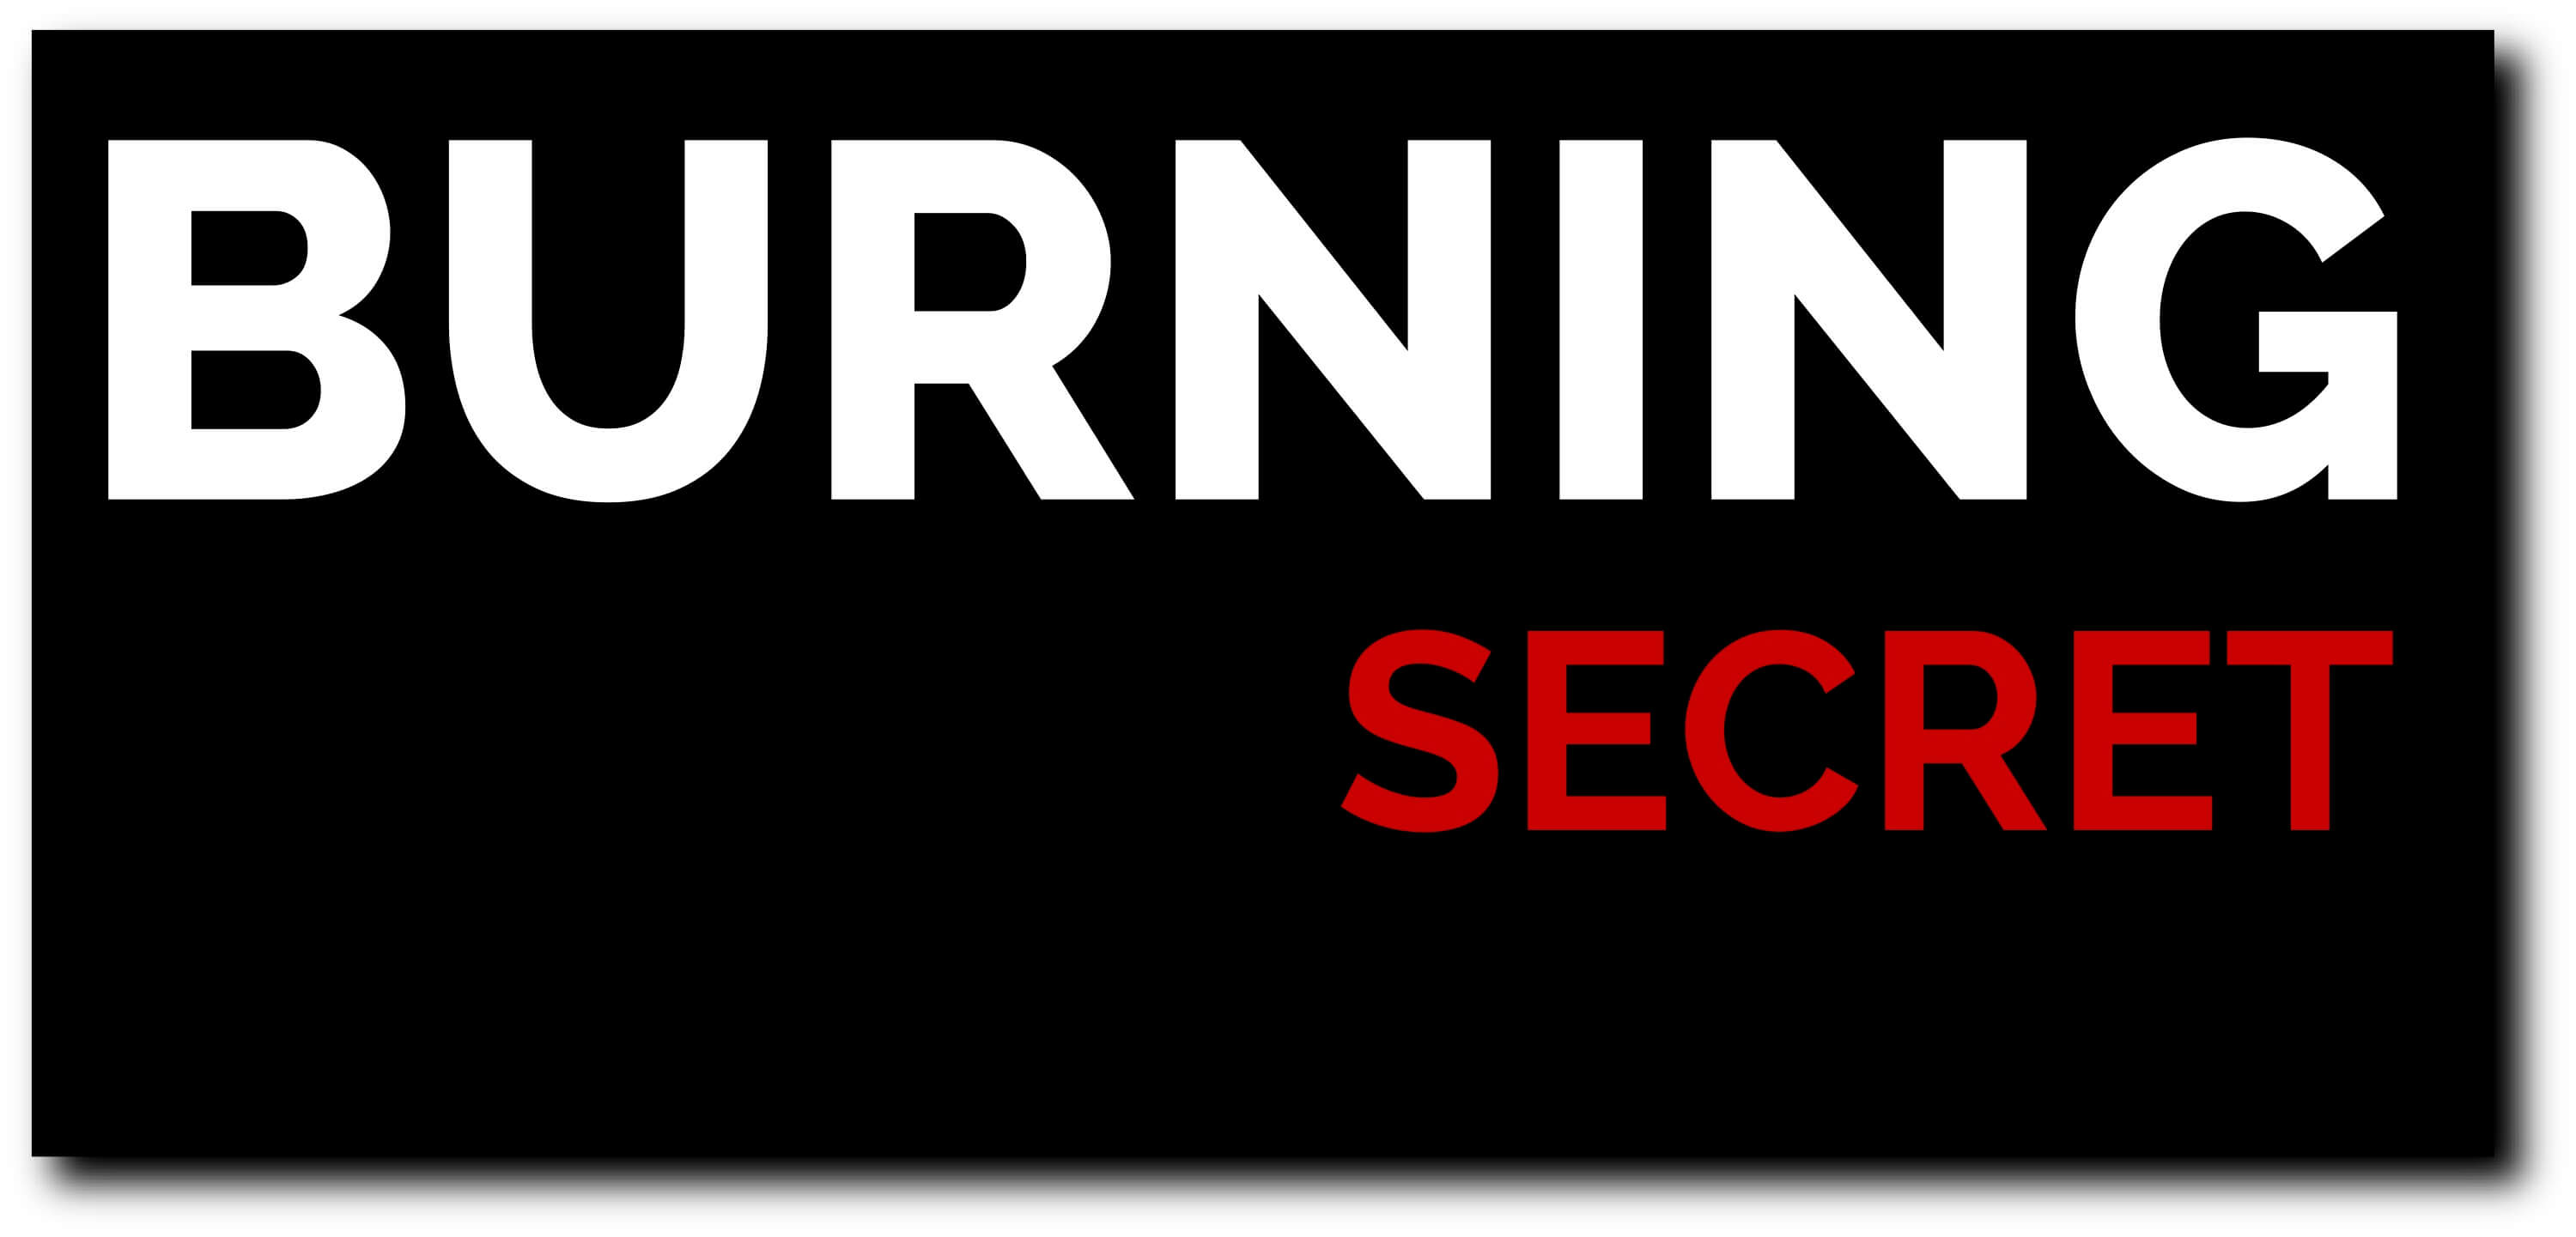 BURNING secret